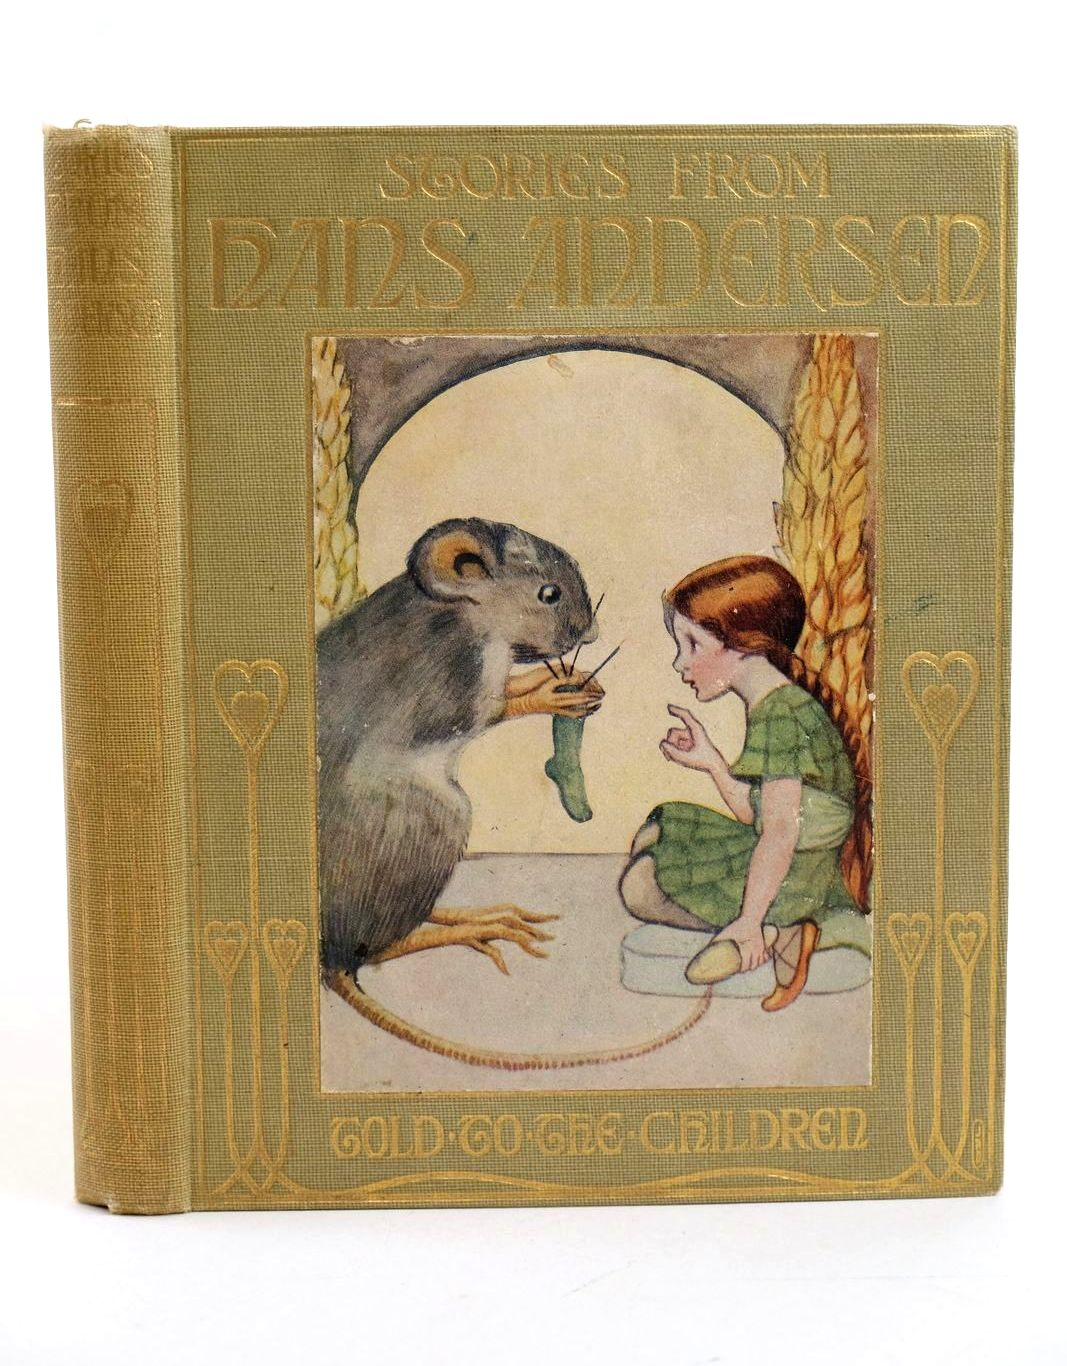 Photo of FAIRY TALES FROM HANS ANDERSEN written by Andersen, Hans Christian Macgregor, Mary illustrated by Allen, Olive published by T.C. & E.C. Jack (STOCK CODE: 1318752)  for sale by Stella & Rose's Books